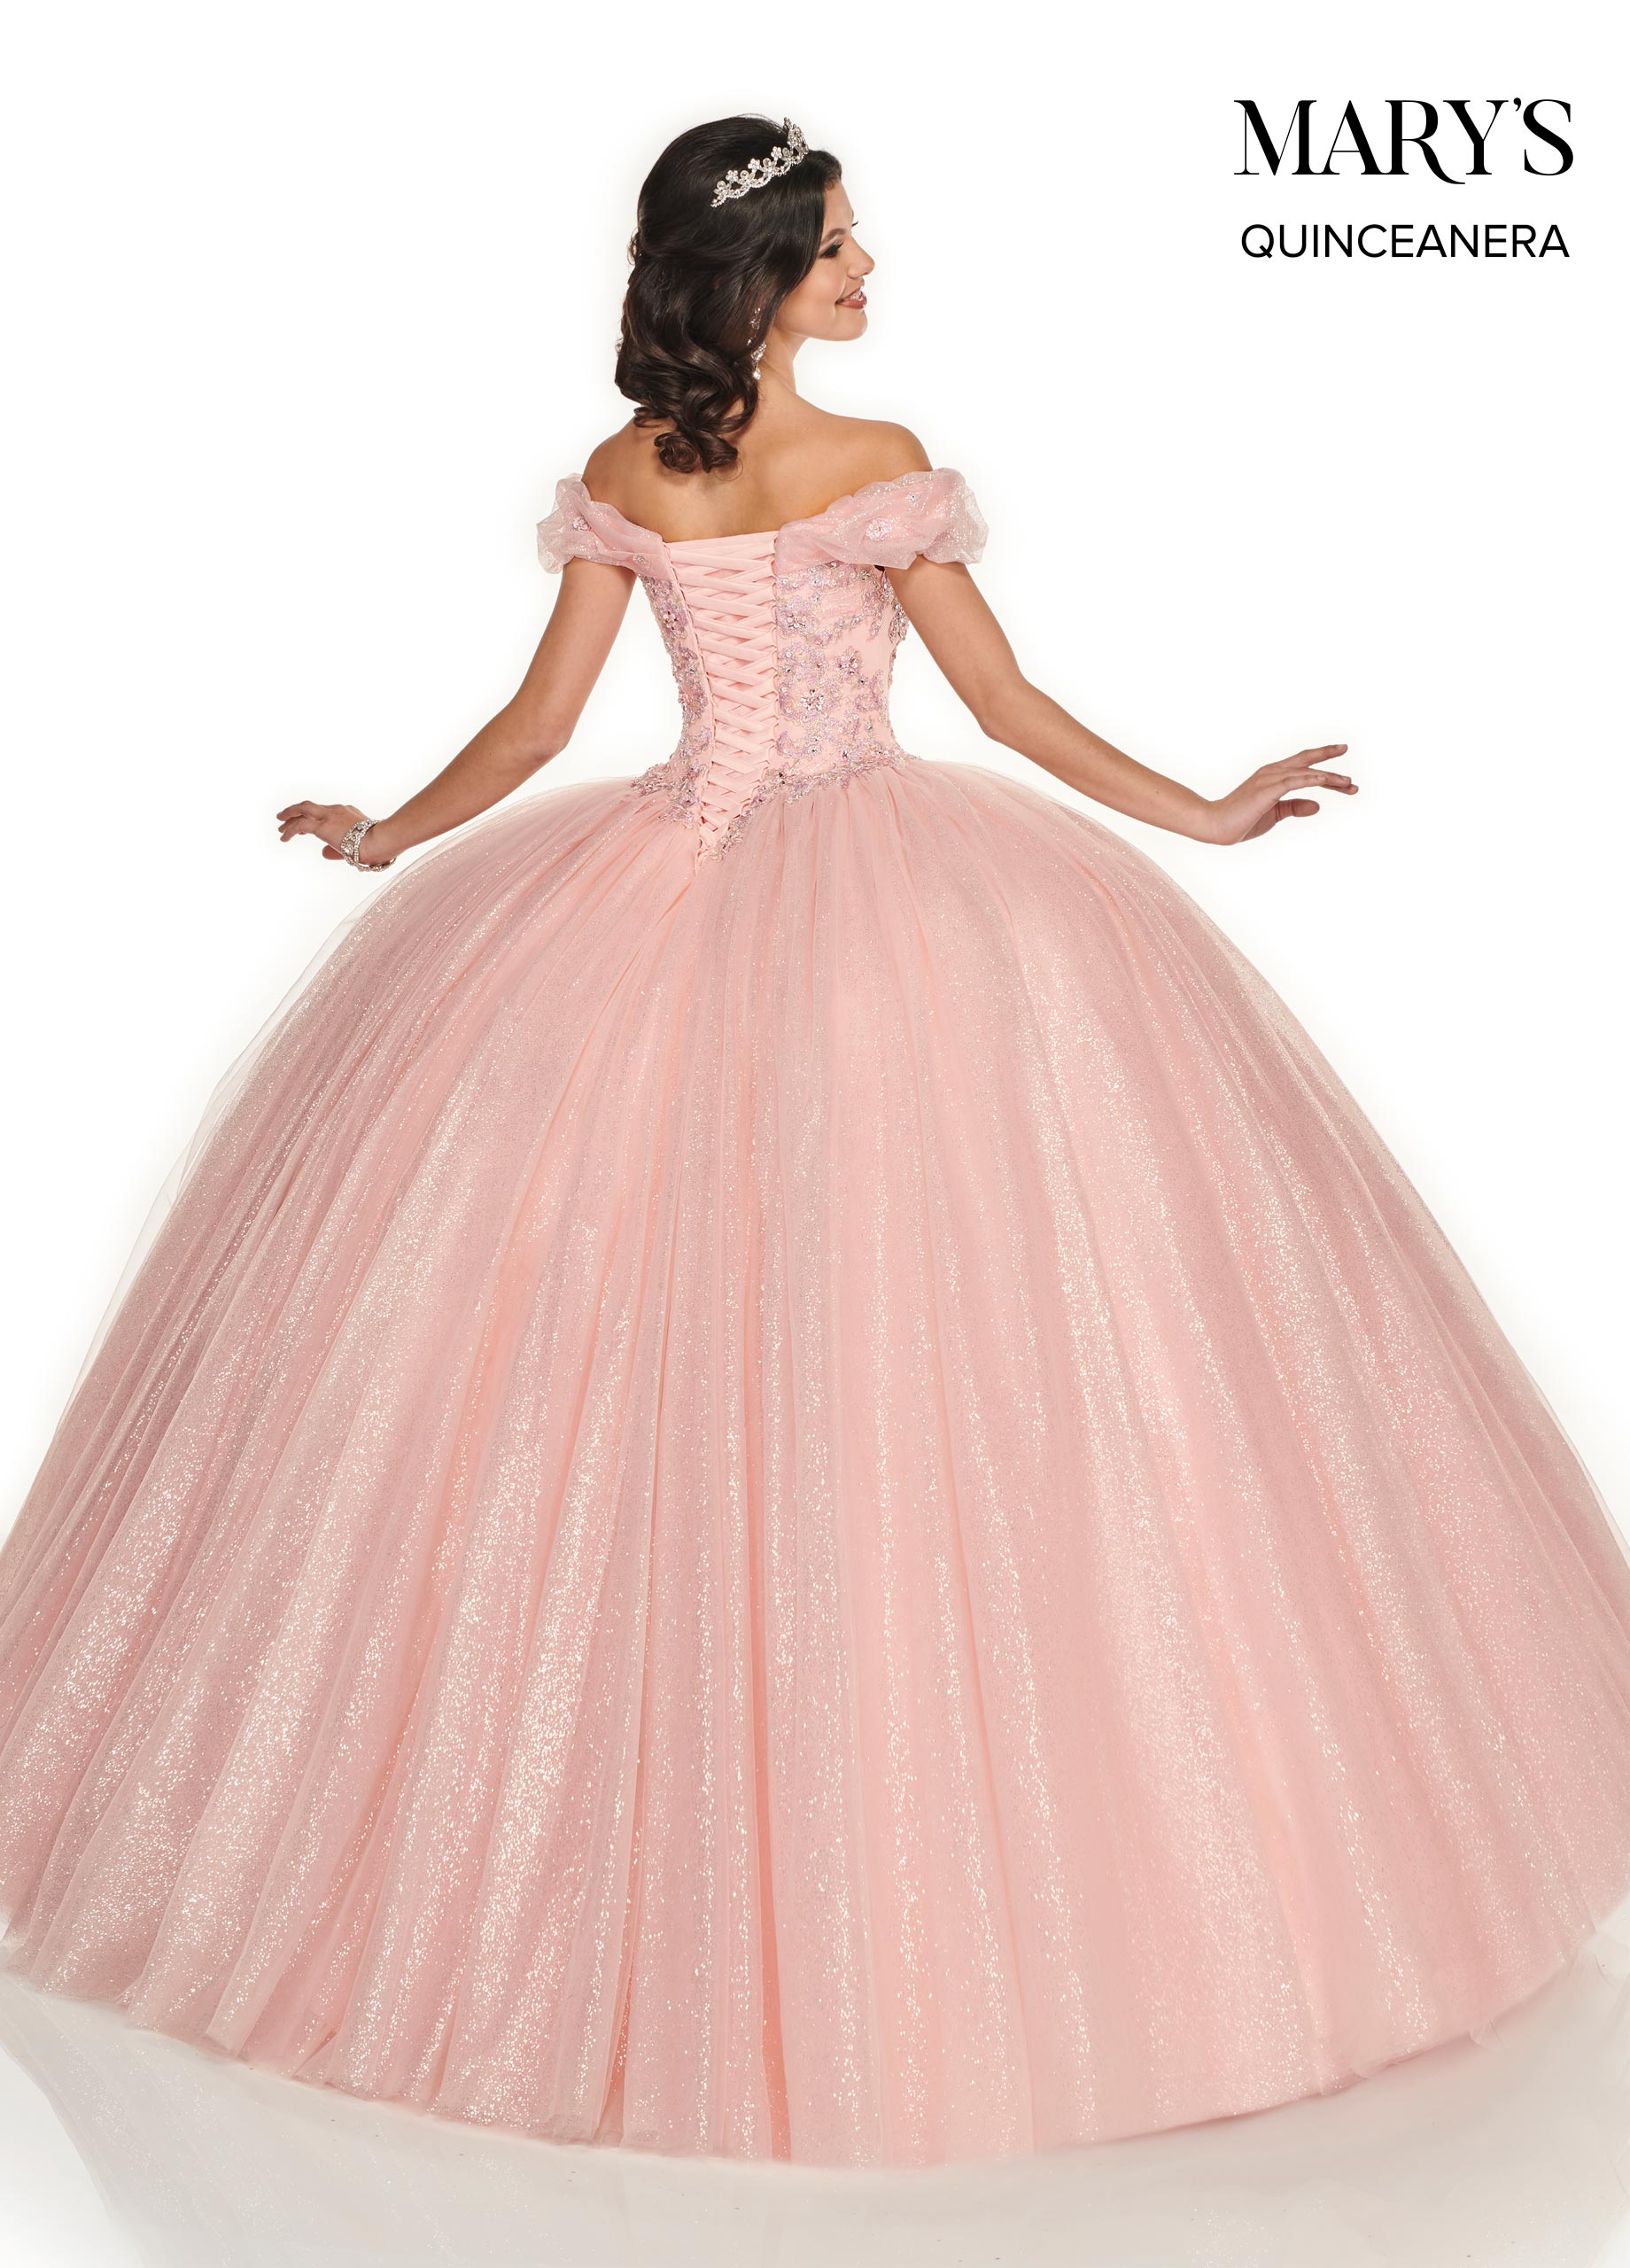 Marys Quinceanera Dresses | Mary's Quinceanera | Style - MQ2082